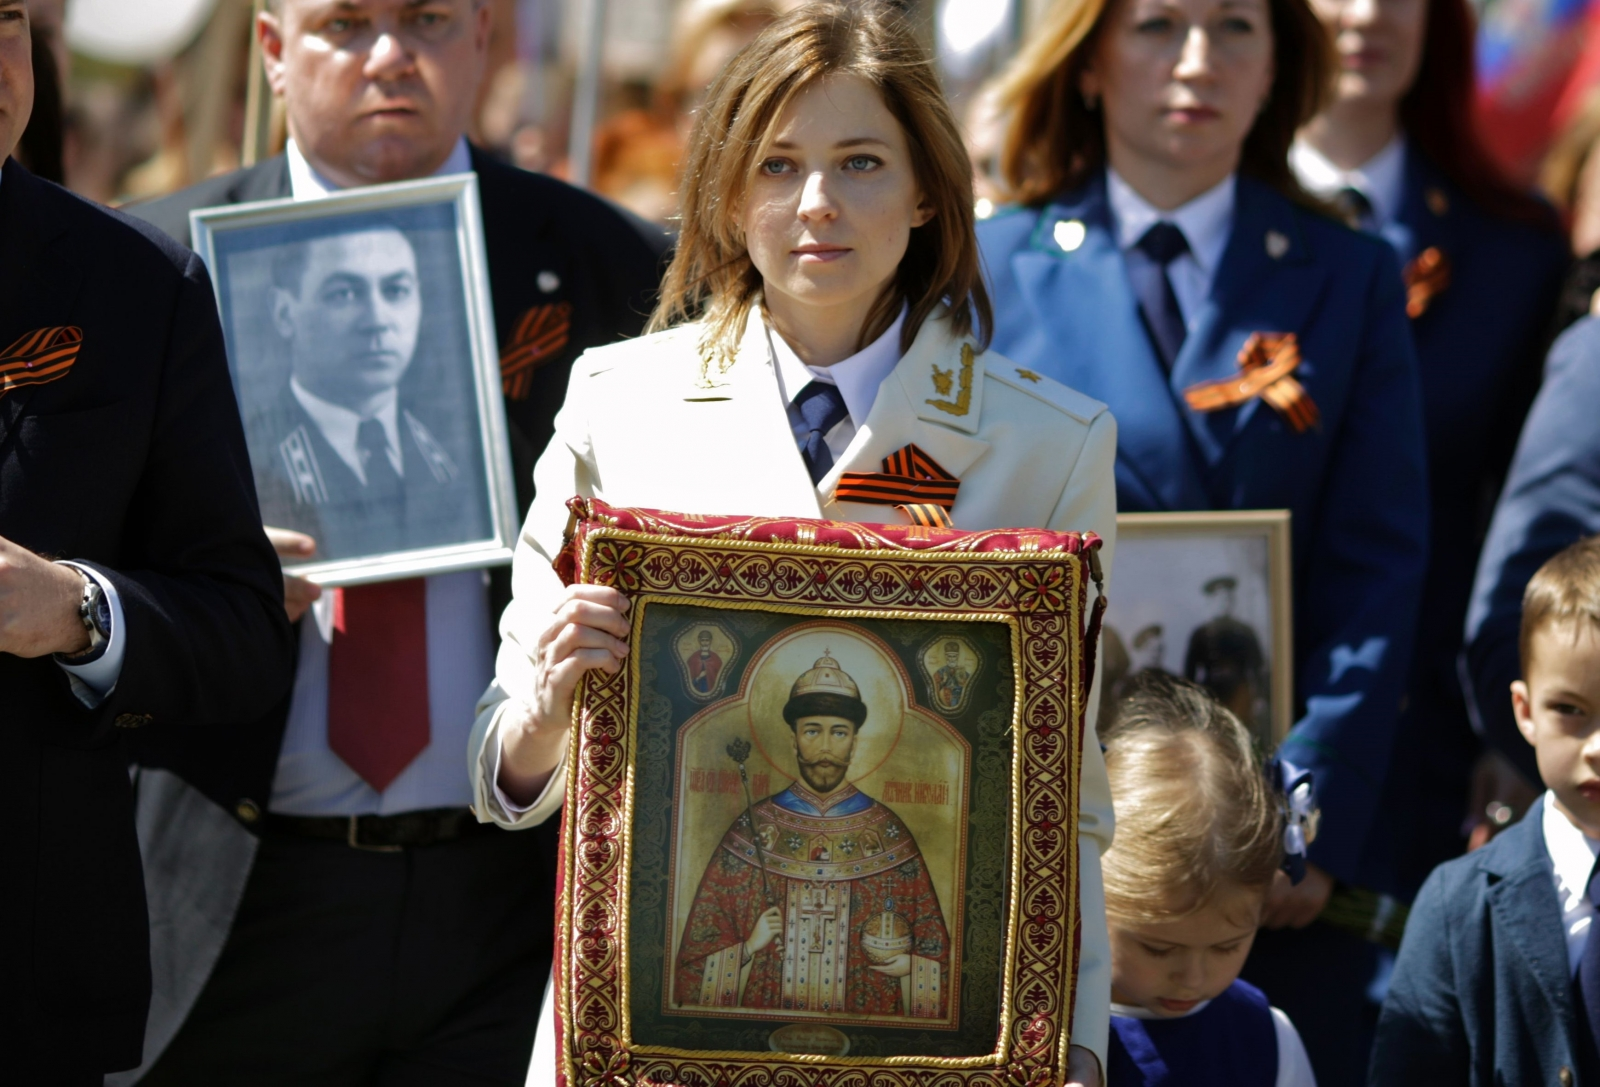 Natalya Poklonskaya told about the miracle inexplicable scientists 04.03.2017 23